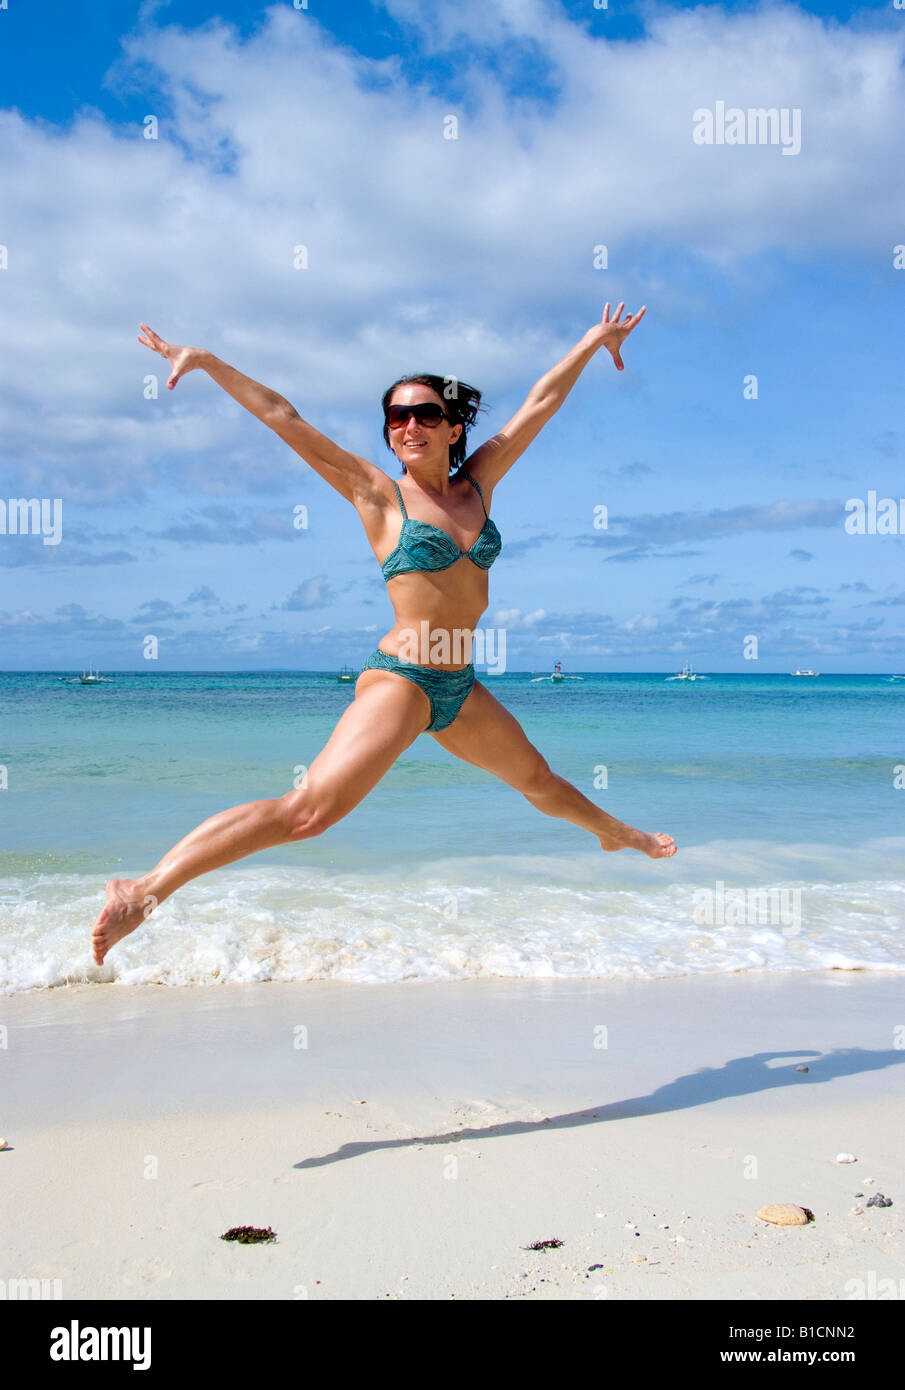 young woman jumping on the beach, Philippines - Stock Image